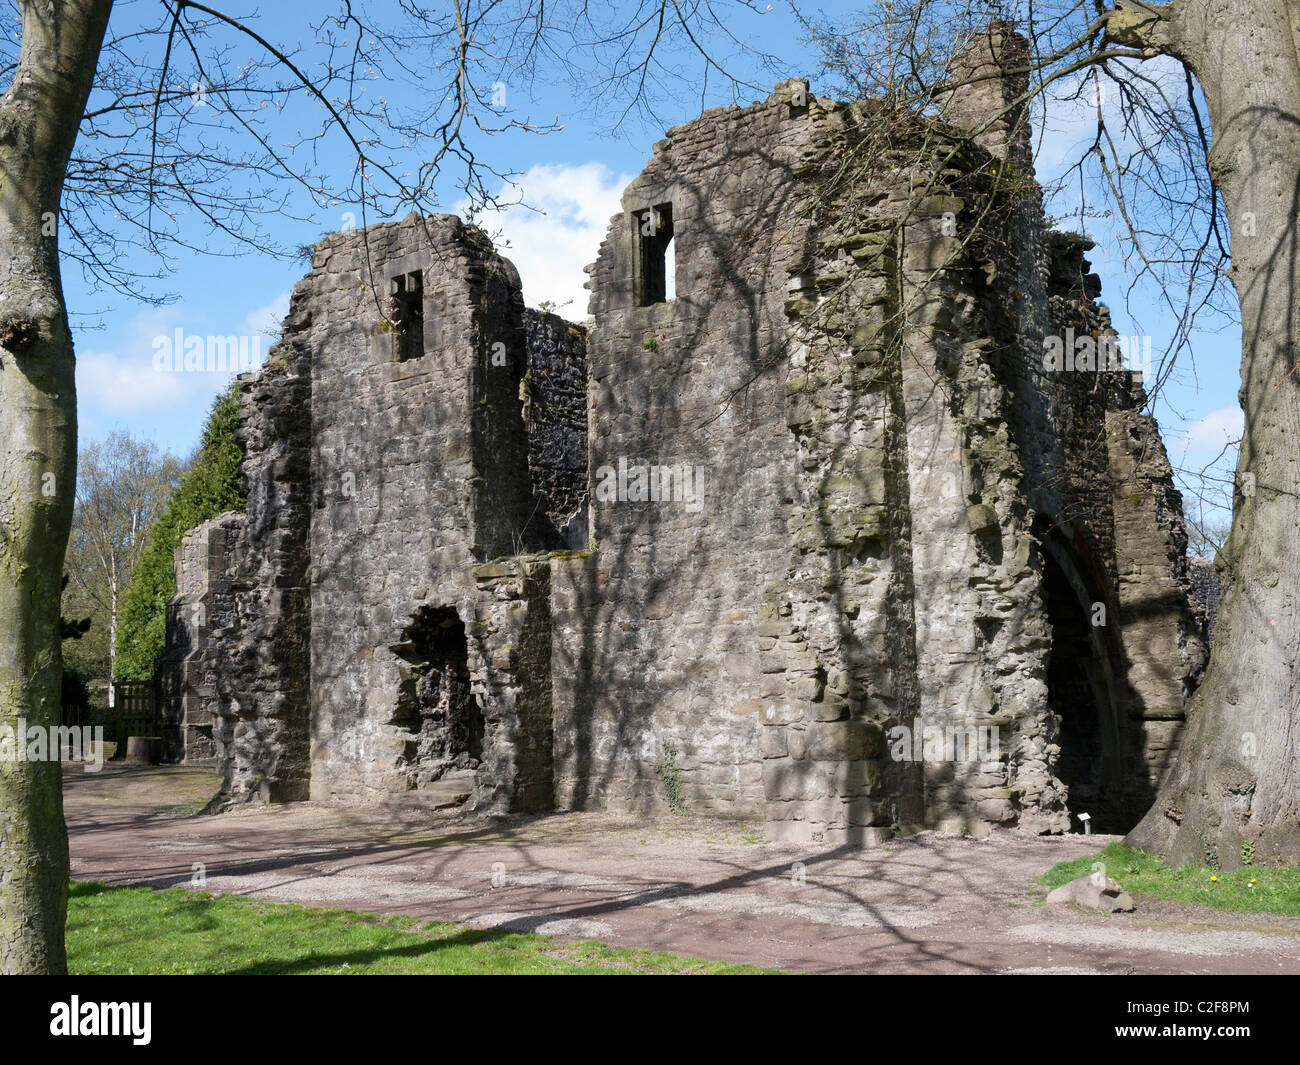 Ruins of Whalley Abbey, Whalley, Clitheroe, Lancashire, England, UK. - Stock Image